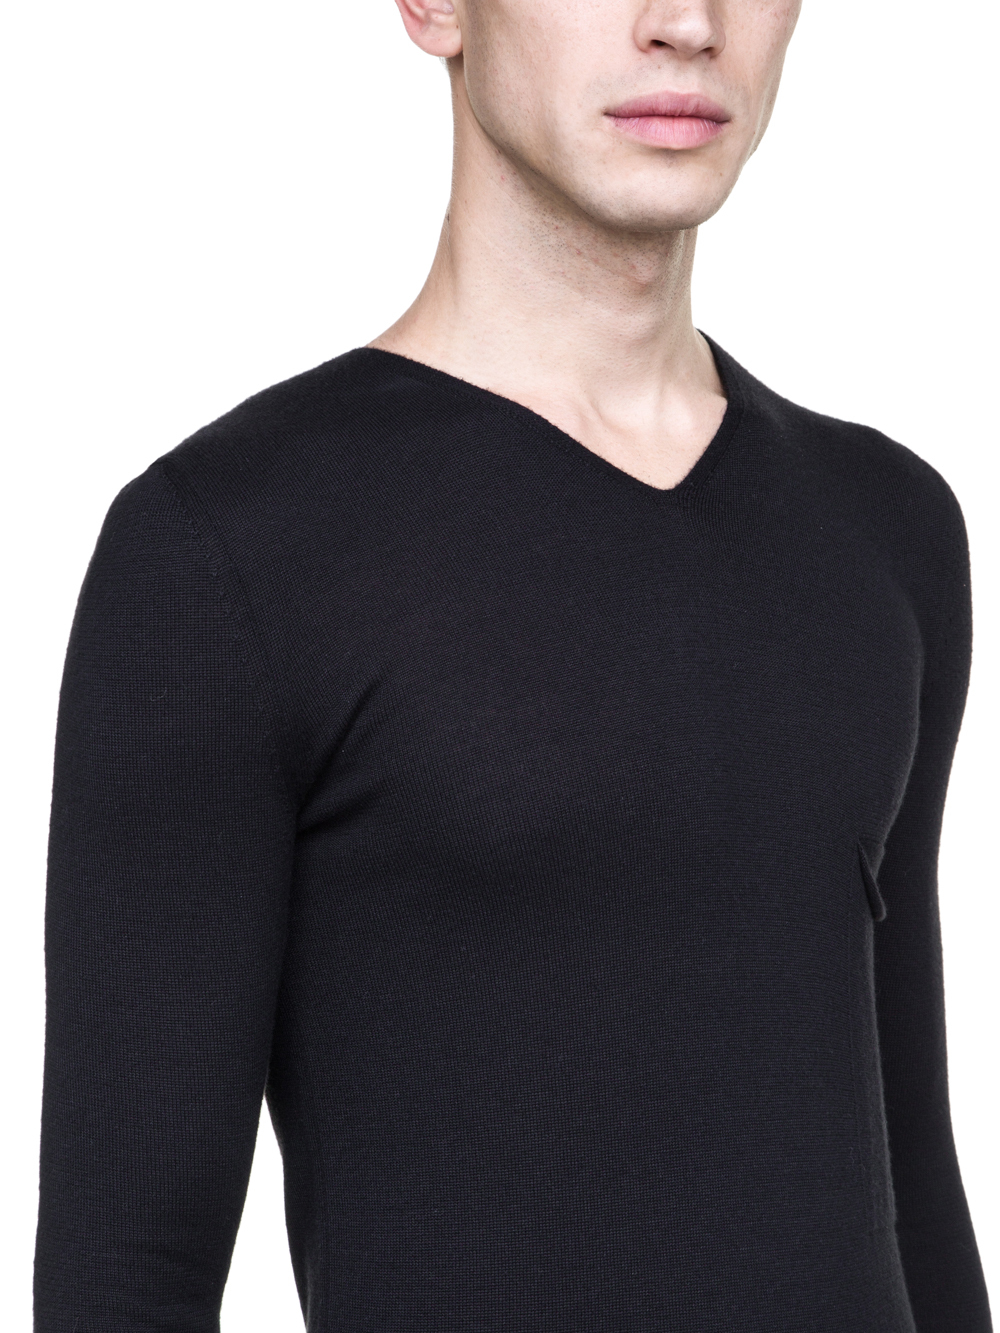 RICK OWENS OFF-THE-RUNWAY LONG-SLEEVE TEE IN BLACK CASHMERE